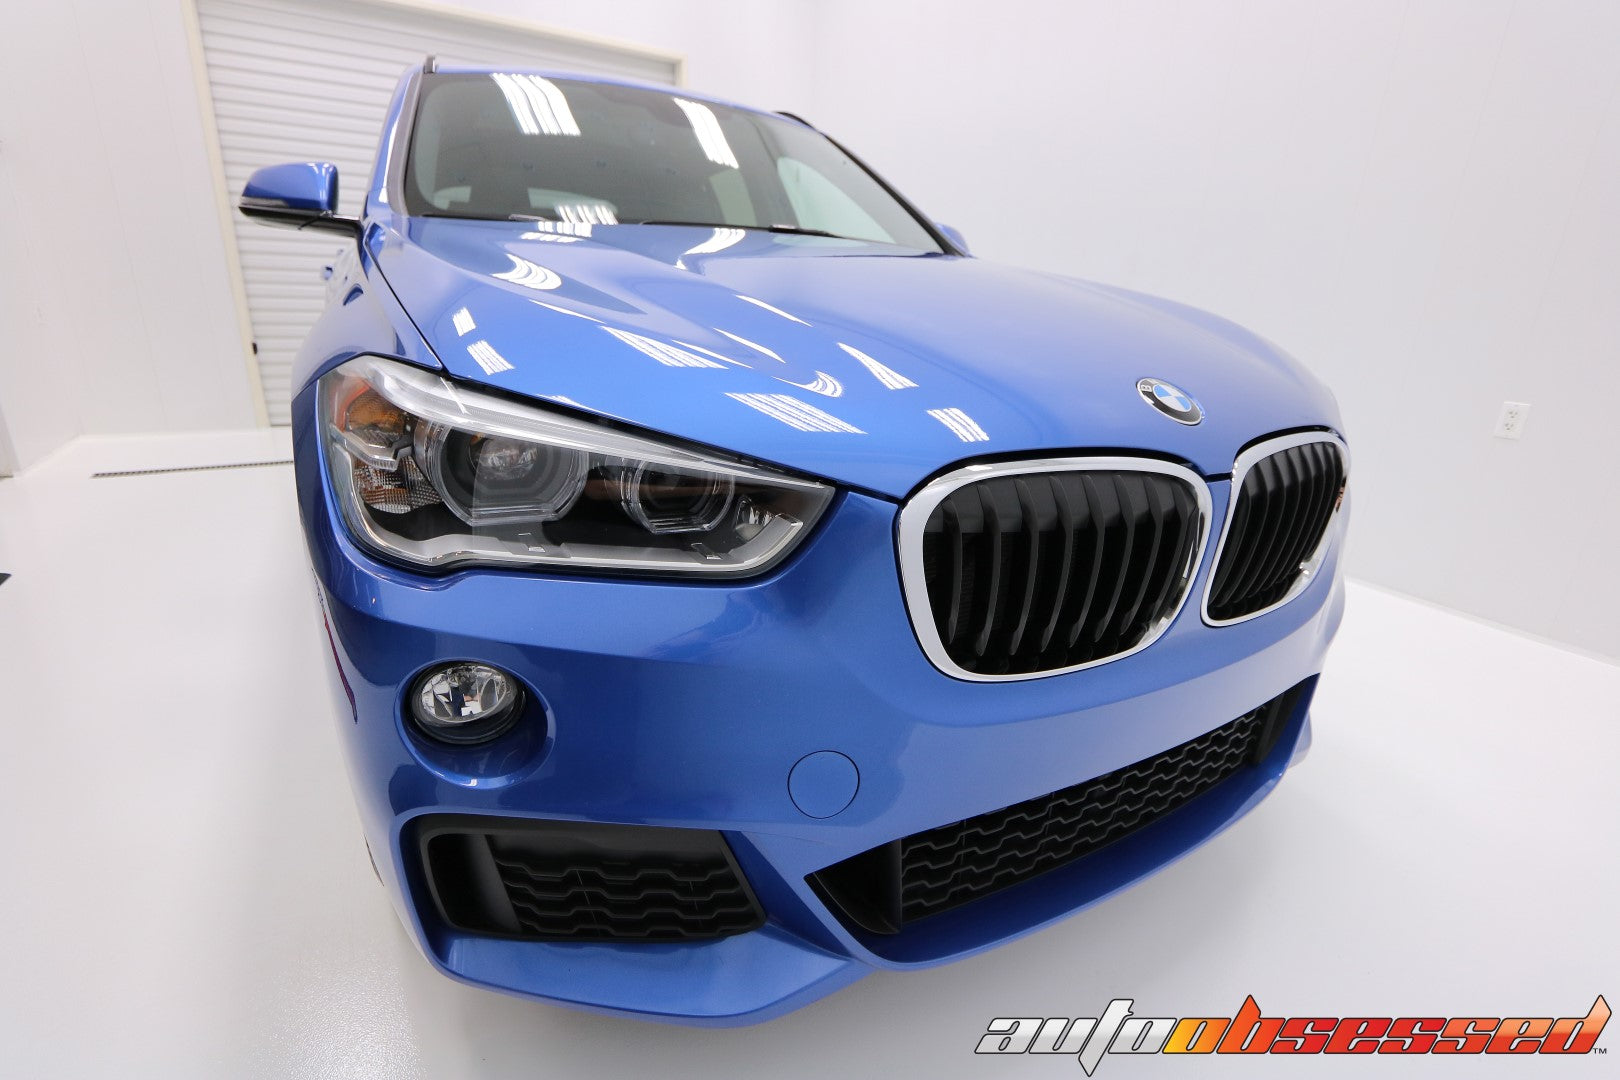 2018 BMW X1 Car Detailing - Auto Obsessed